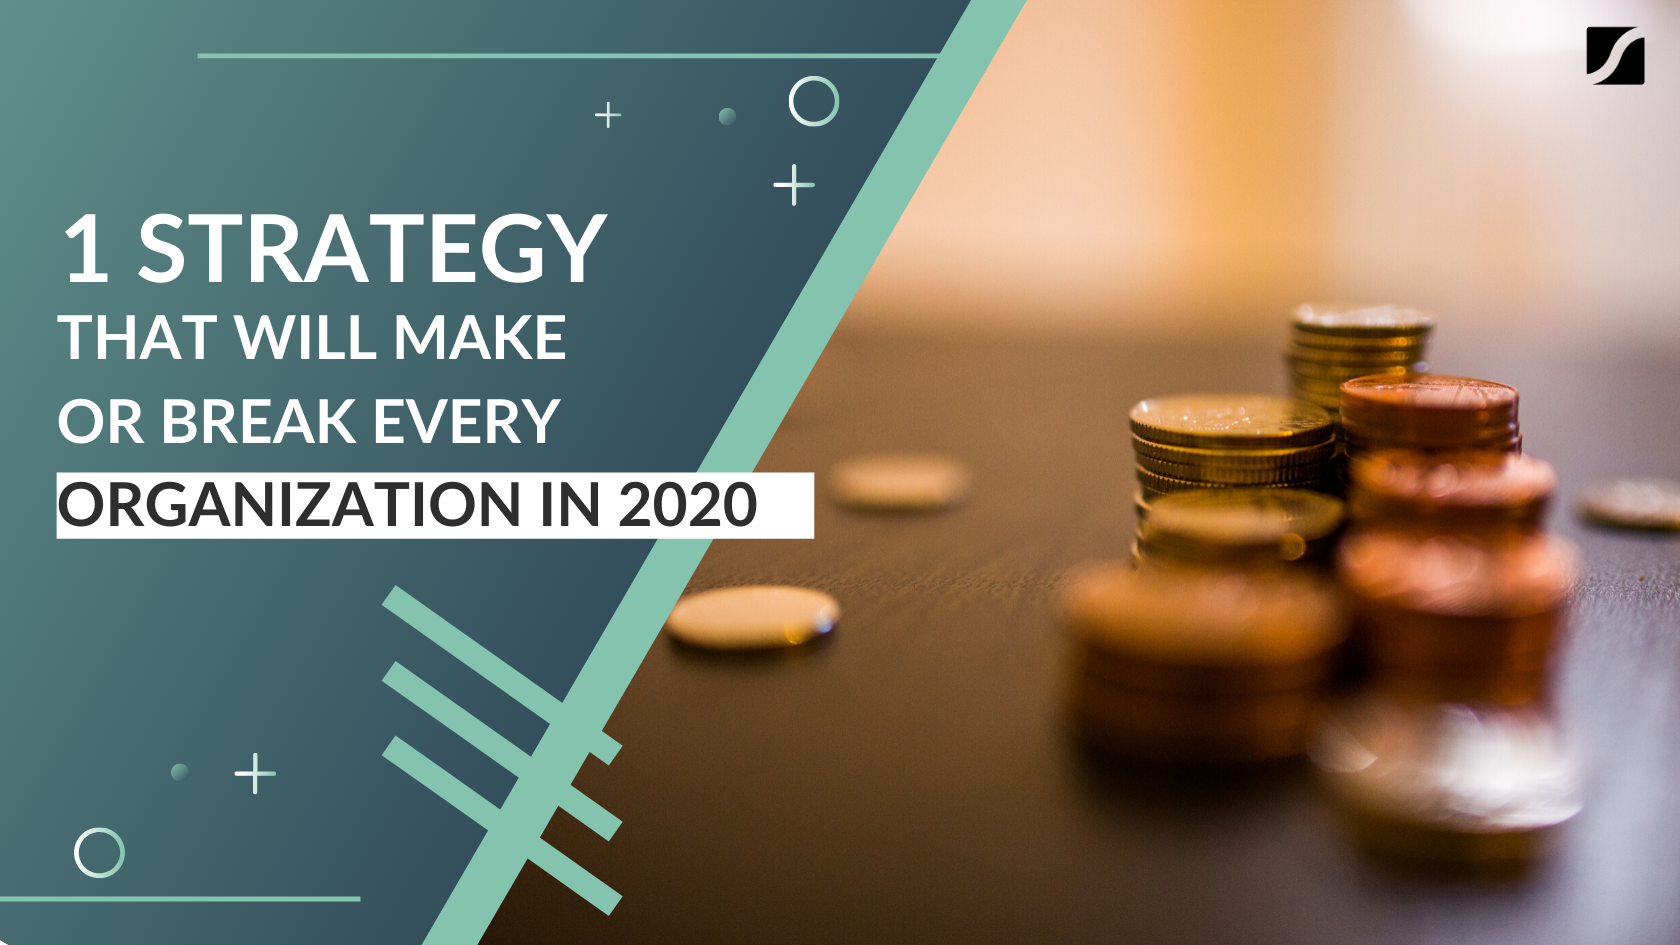 1 Strategy That Will Make Or Break Every Organization in 2020